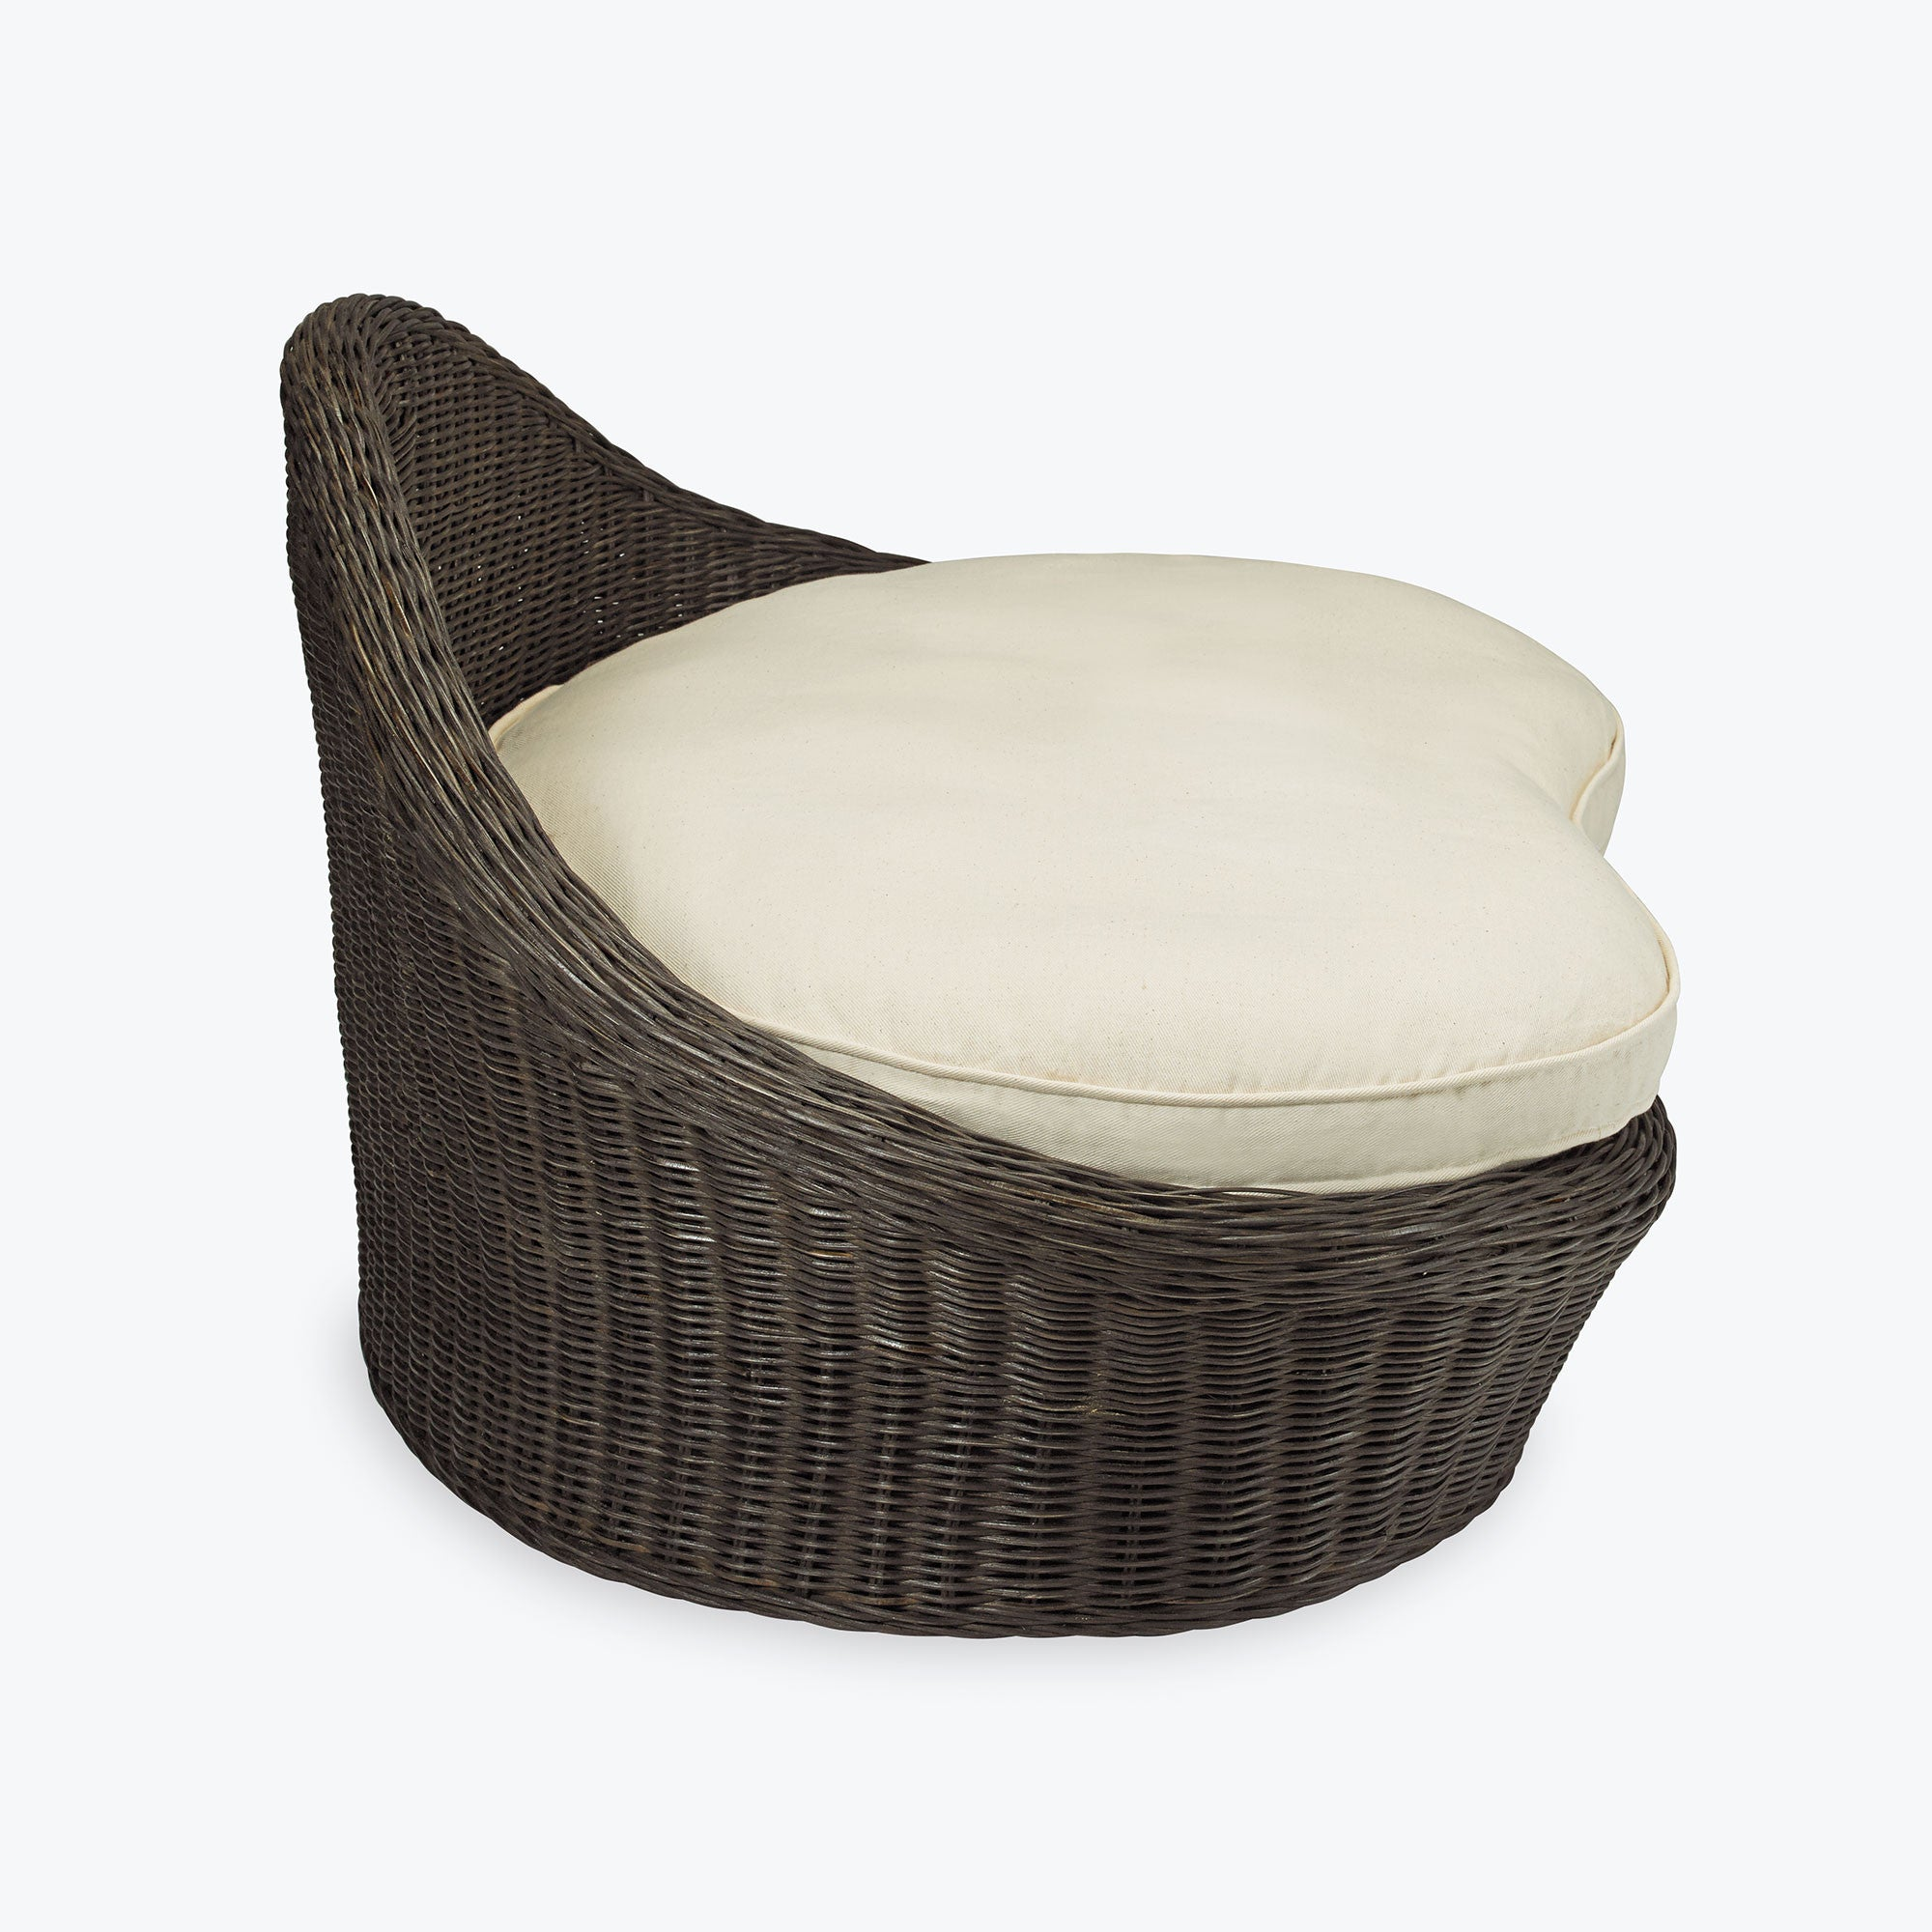 Rattan Meditation Chair Gaiam